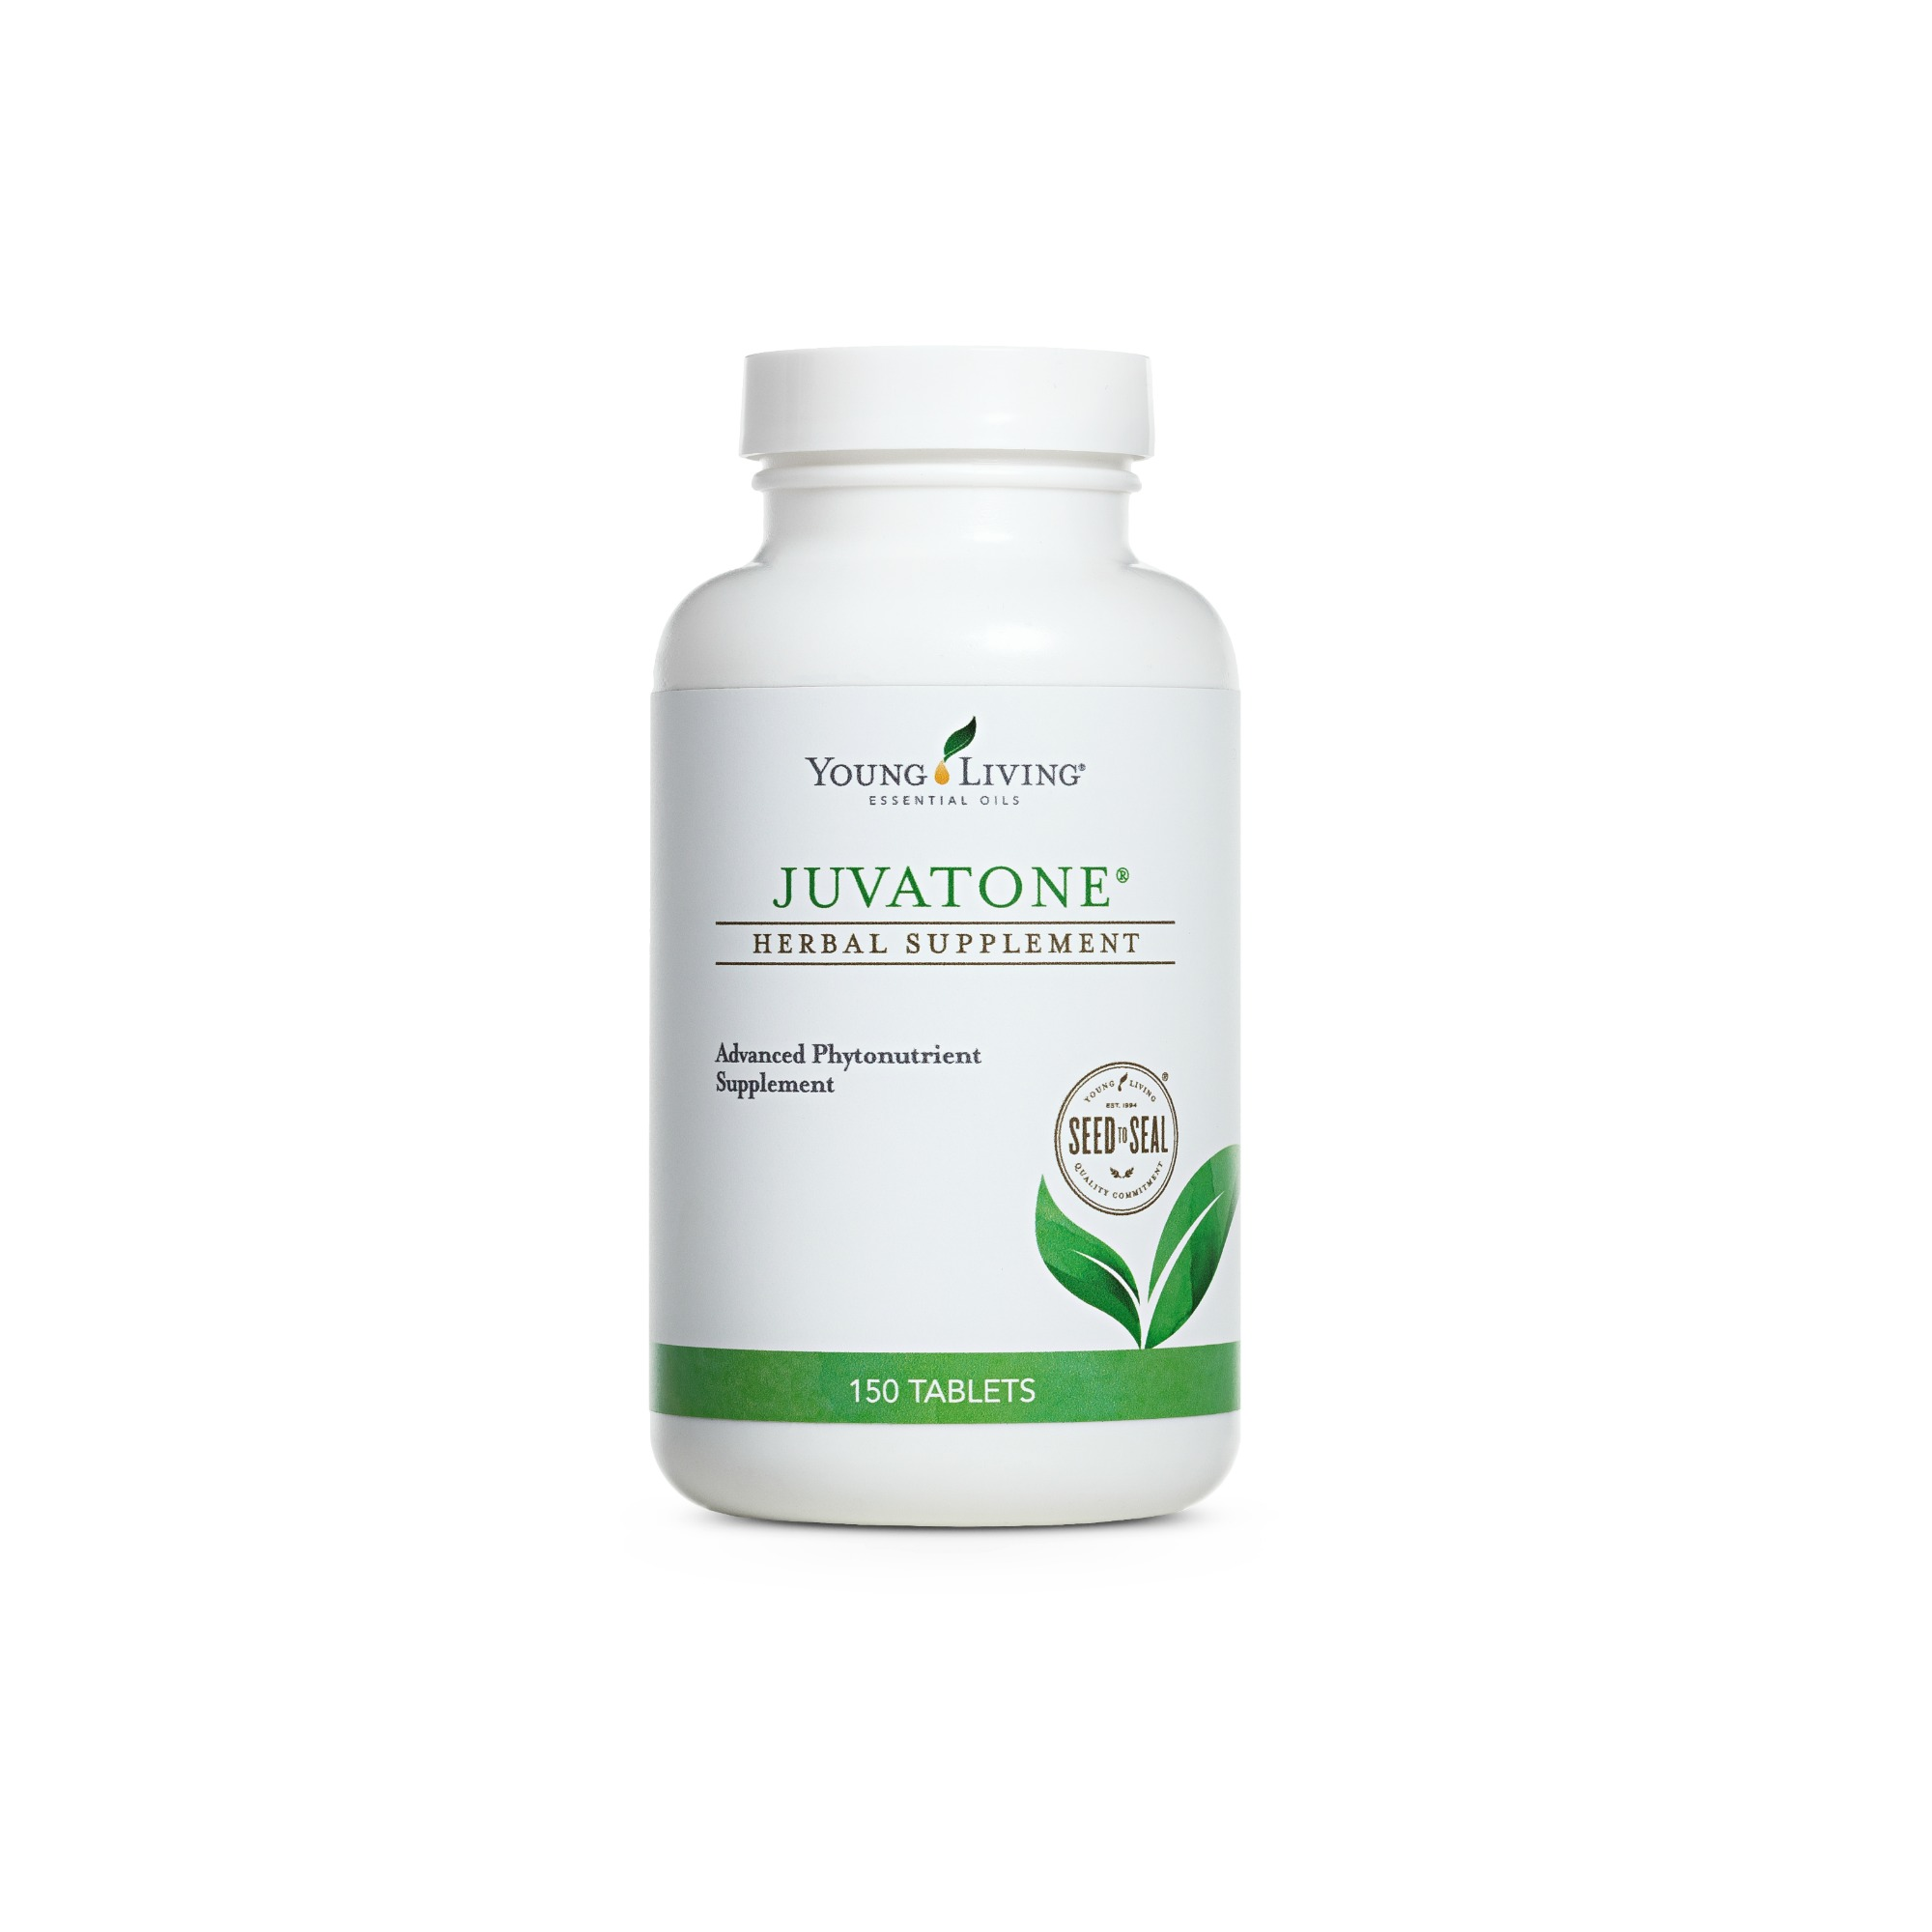 JUVATONE    JuvaTone is a powerful herbal complex designed to promote healthy liver function, and comes in the form of a tablet. It is an excellent source of choline, a nutrient that is vital for proper liver function and necessary for those with high protein diets. JuvaTone also contains inositol and dl-methionine, which help with the body's normal excretion functions. Methionine also helps recycle glutathione, a natural antioxidant crucial for normal liver function.   Click here   to learn more about this product.